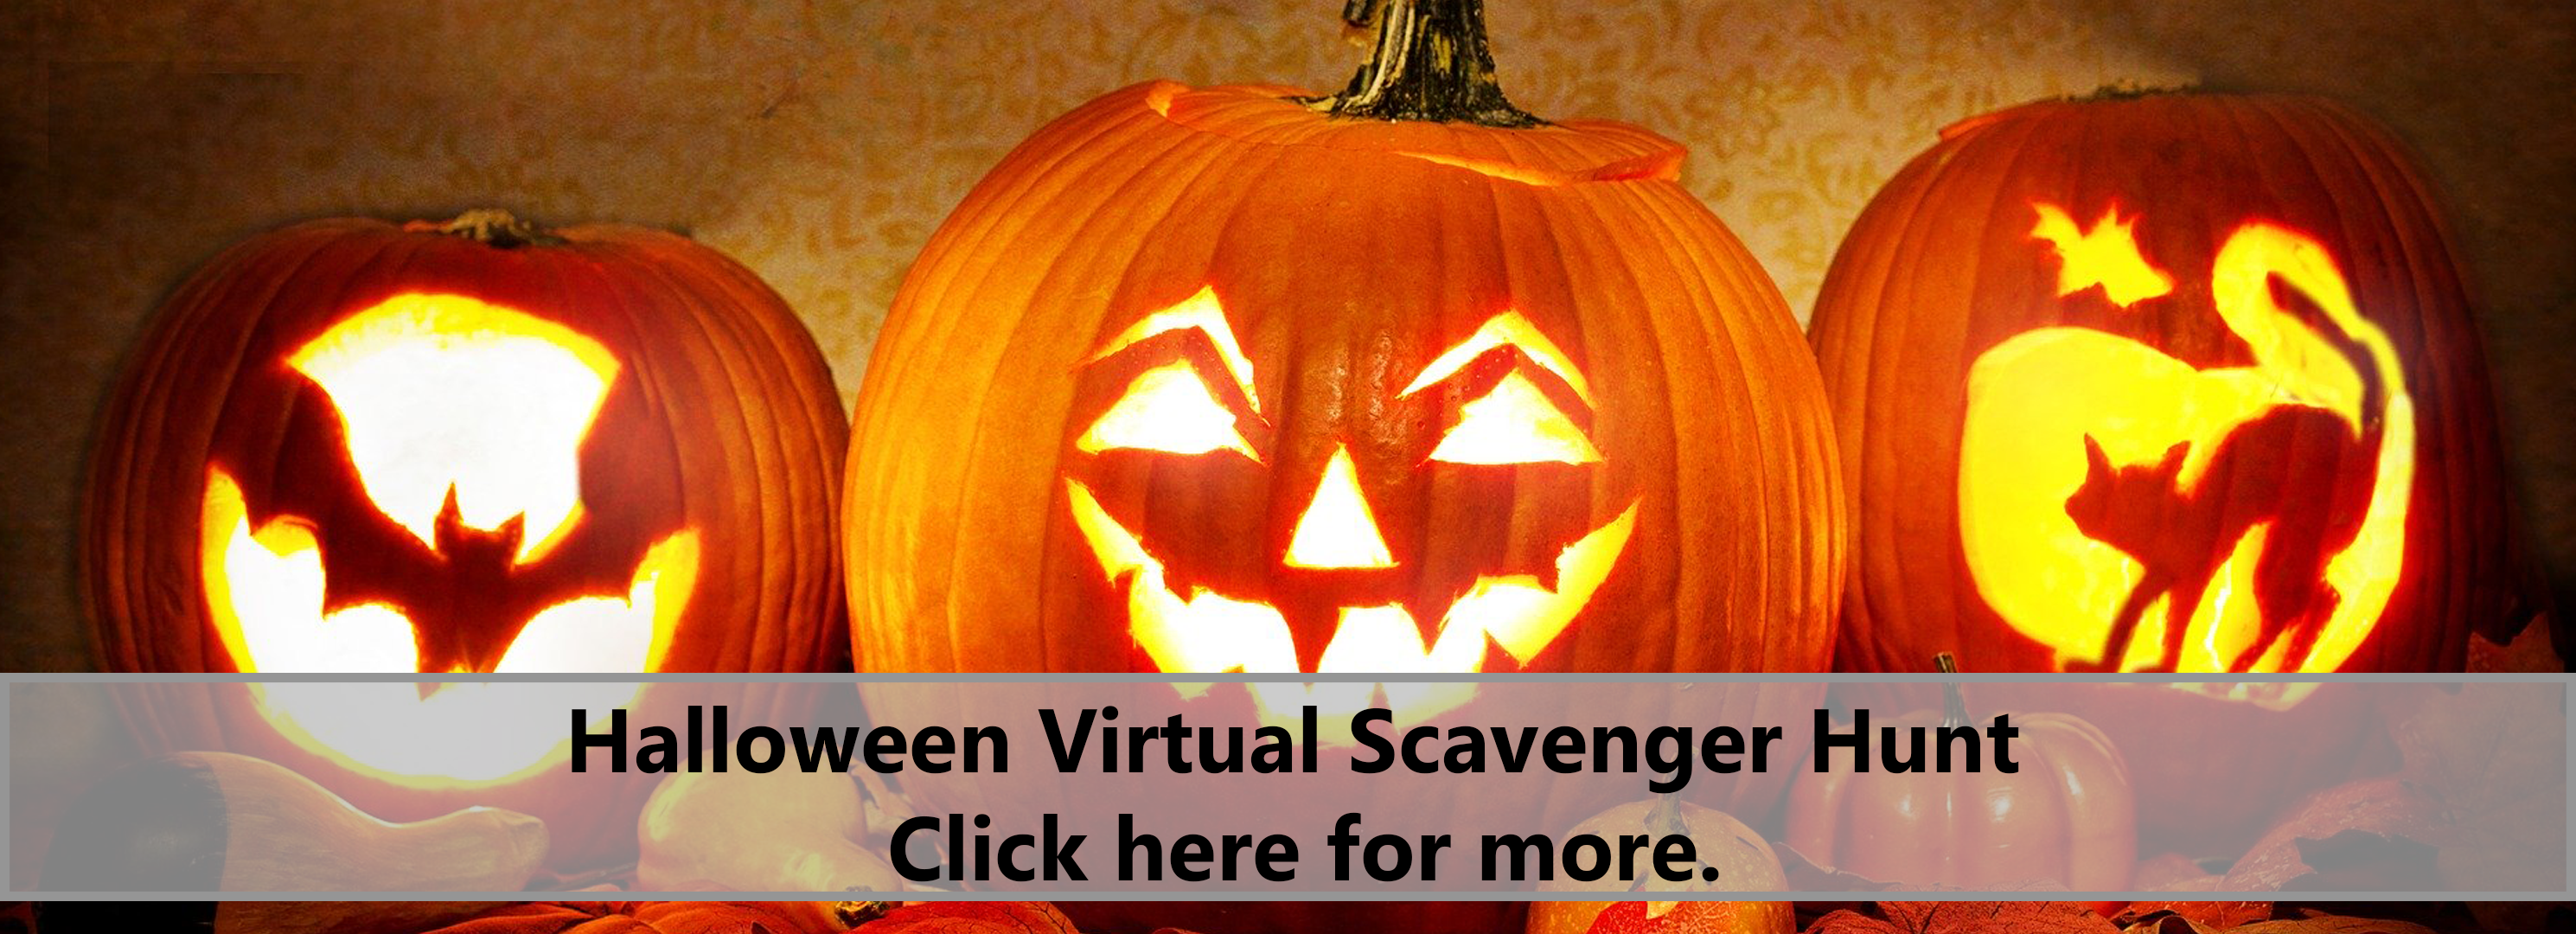 Halloween Virtual Scavenger Hunt. Click here for more.